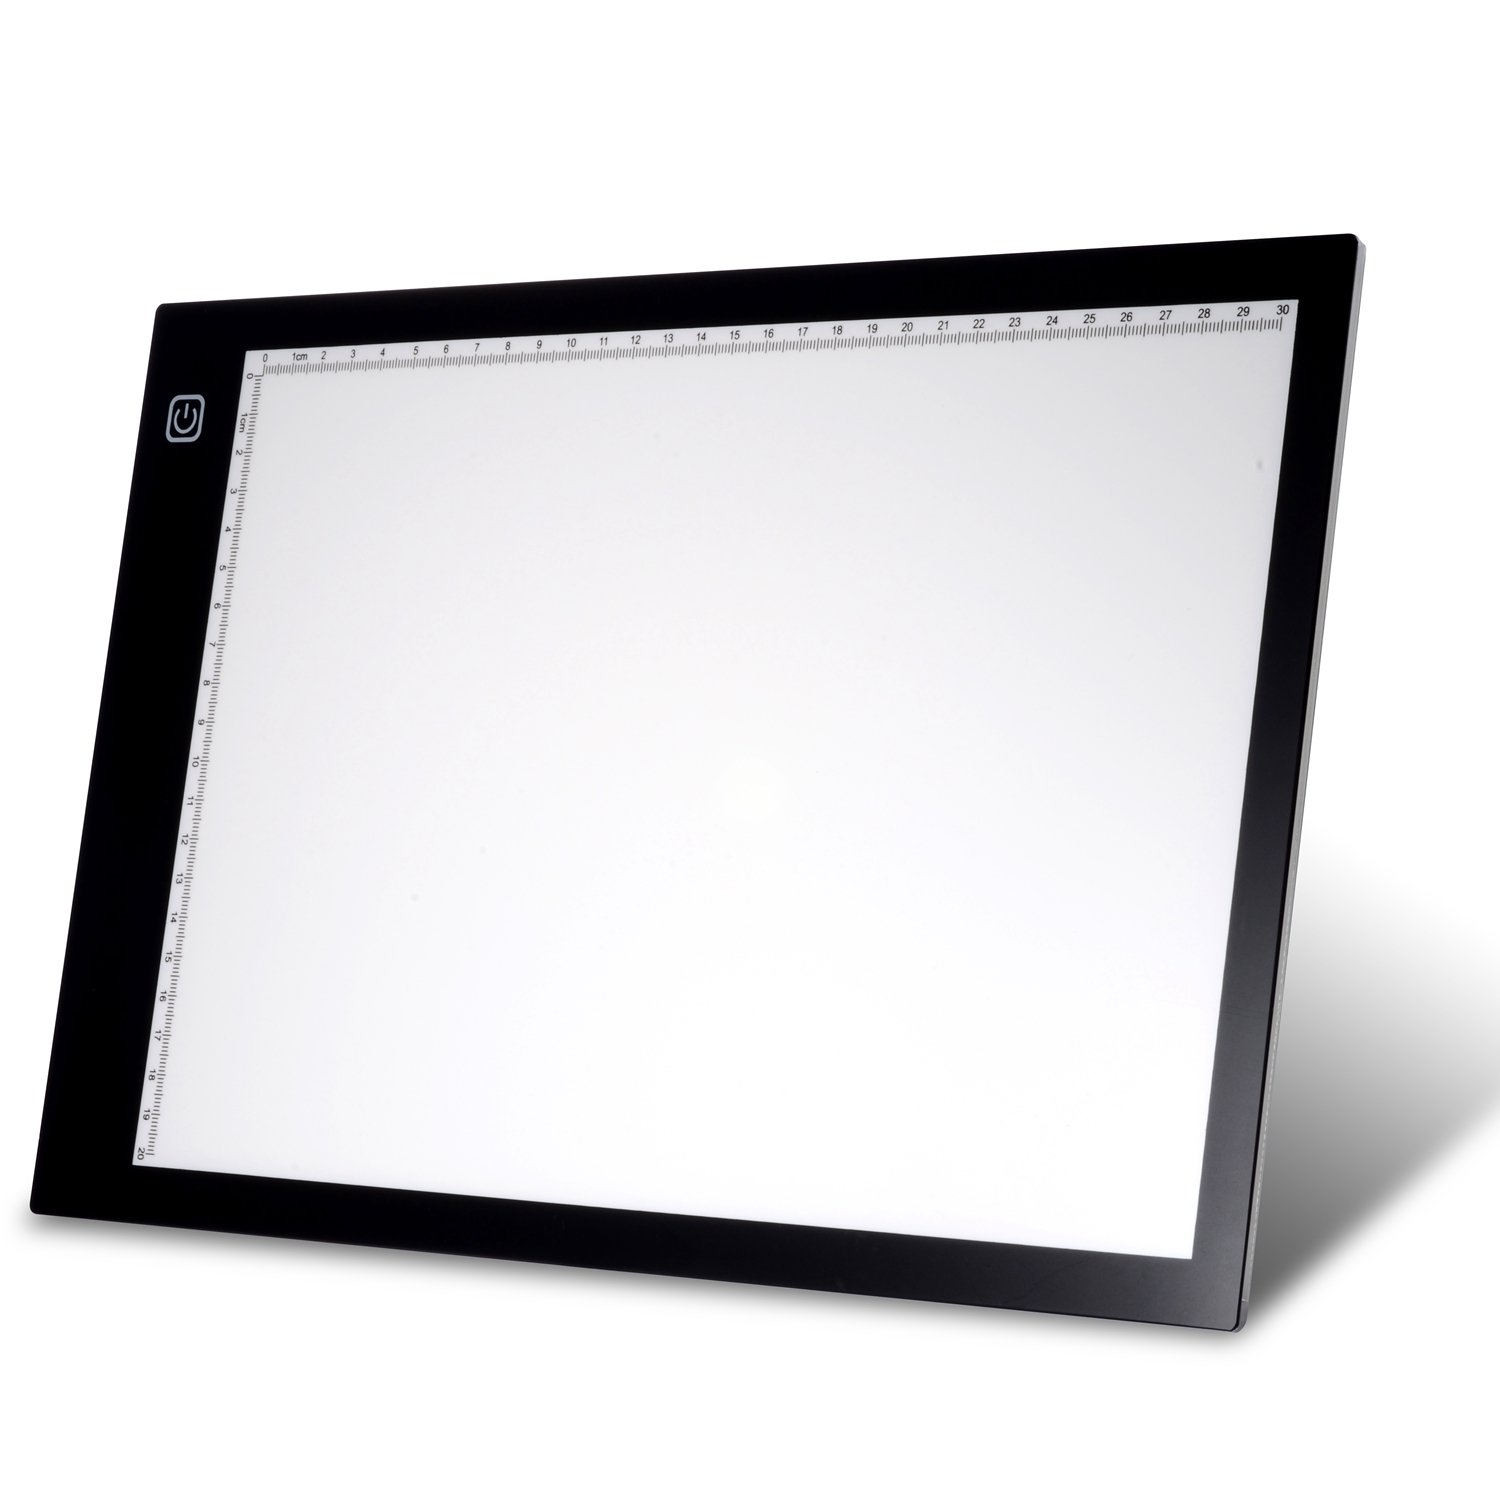 PChero Tracing Light Box, A4 17inch LED Tracing Drawing Sketch Light Pad with Adjustable Light Intensity for Artists, Doctors, Drawing, Sketching, Animation